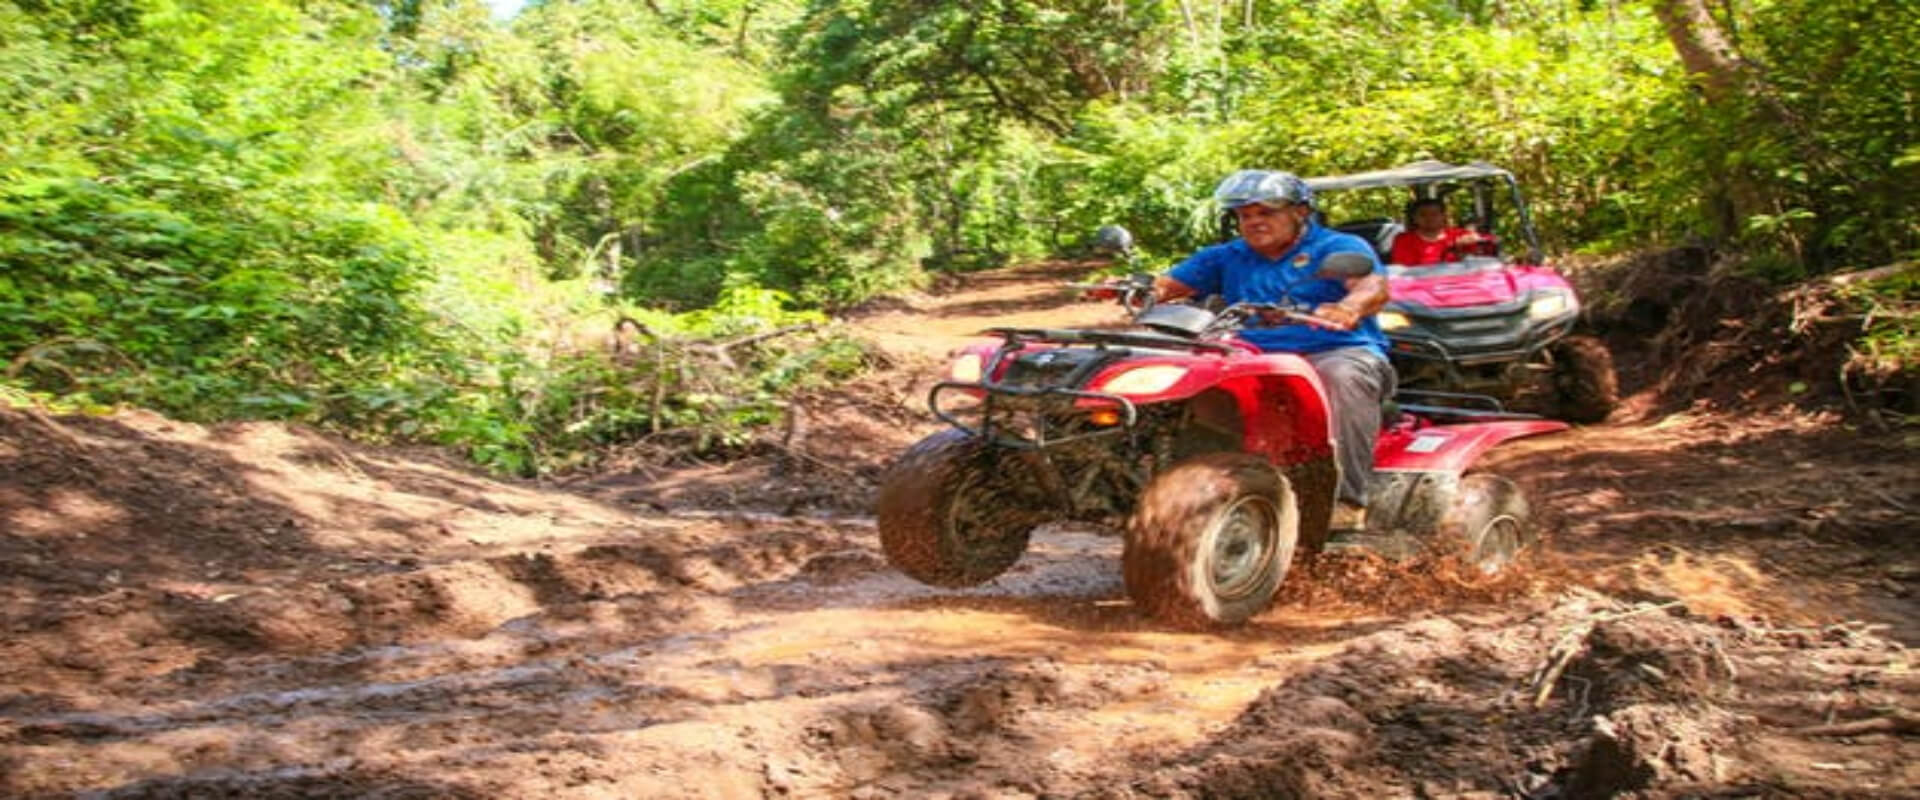 Diamante's ATV tour | Costa Rica Jade Tours